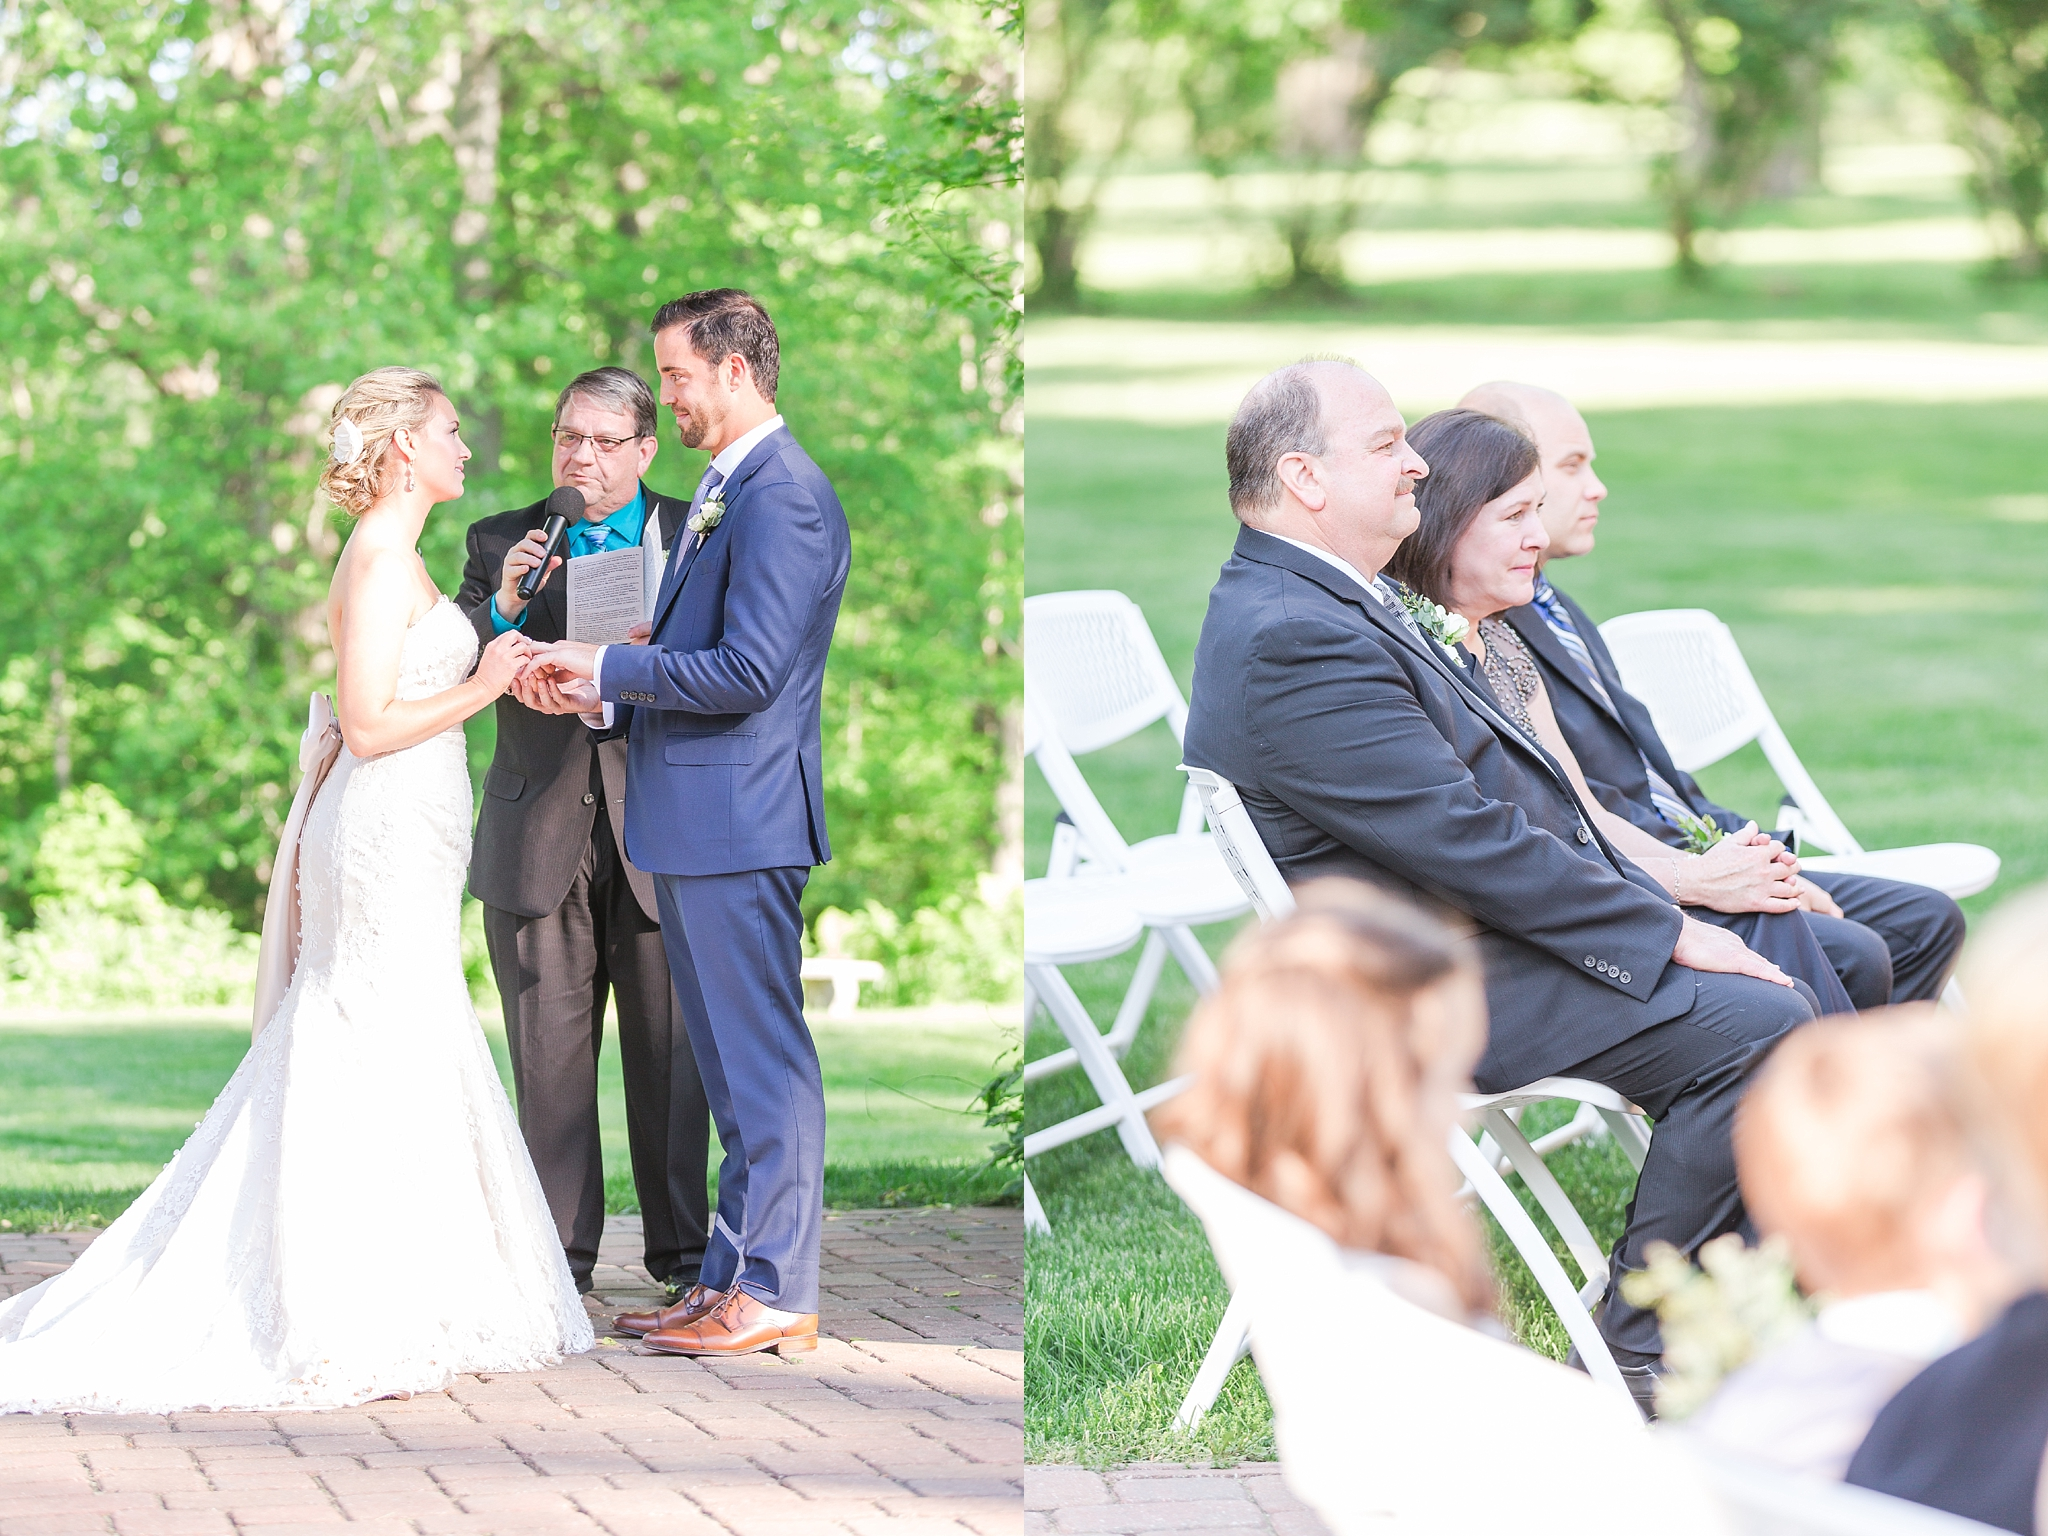 fun-candid-laid-back-wedding-photos-at-wellers-carriage-house-in-saline-michigan-and-at-the-eagle-crest-golf-resort-by-courtney-carolyn-photography_0068.jpg